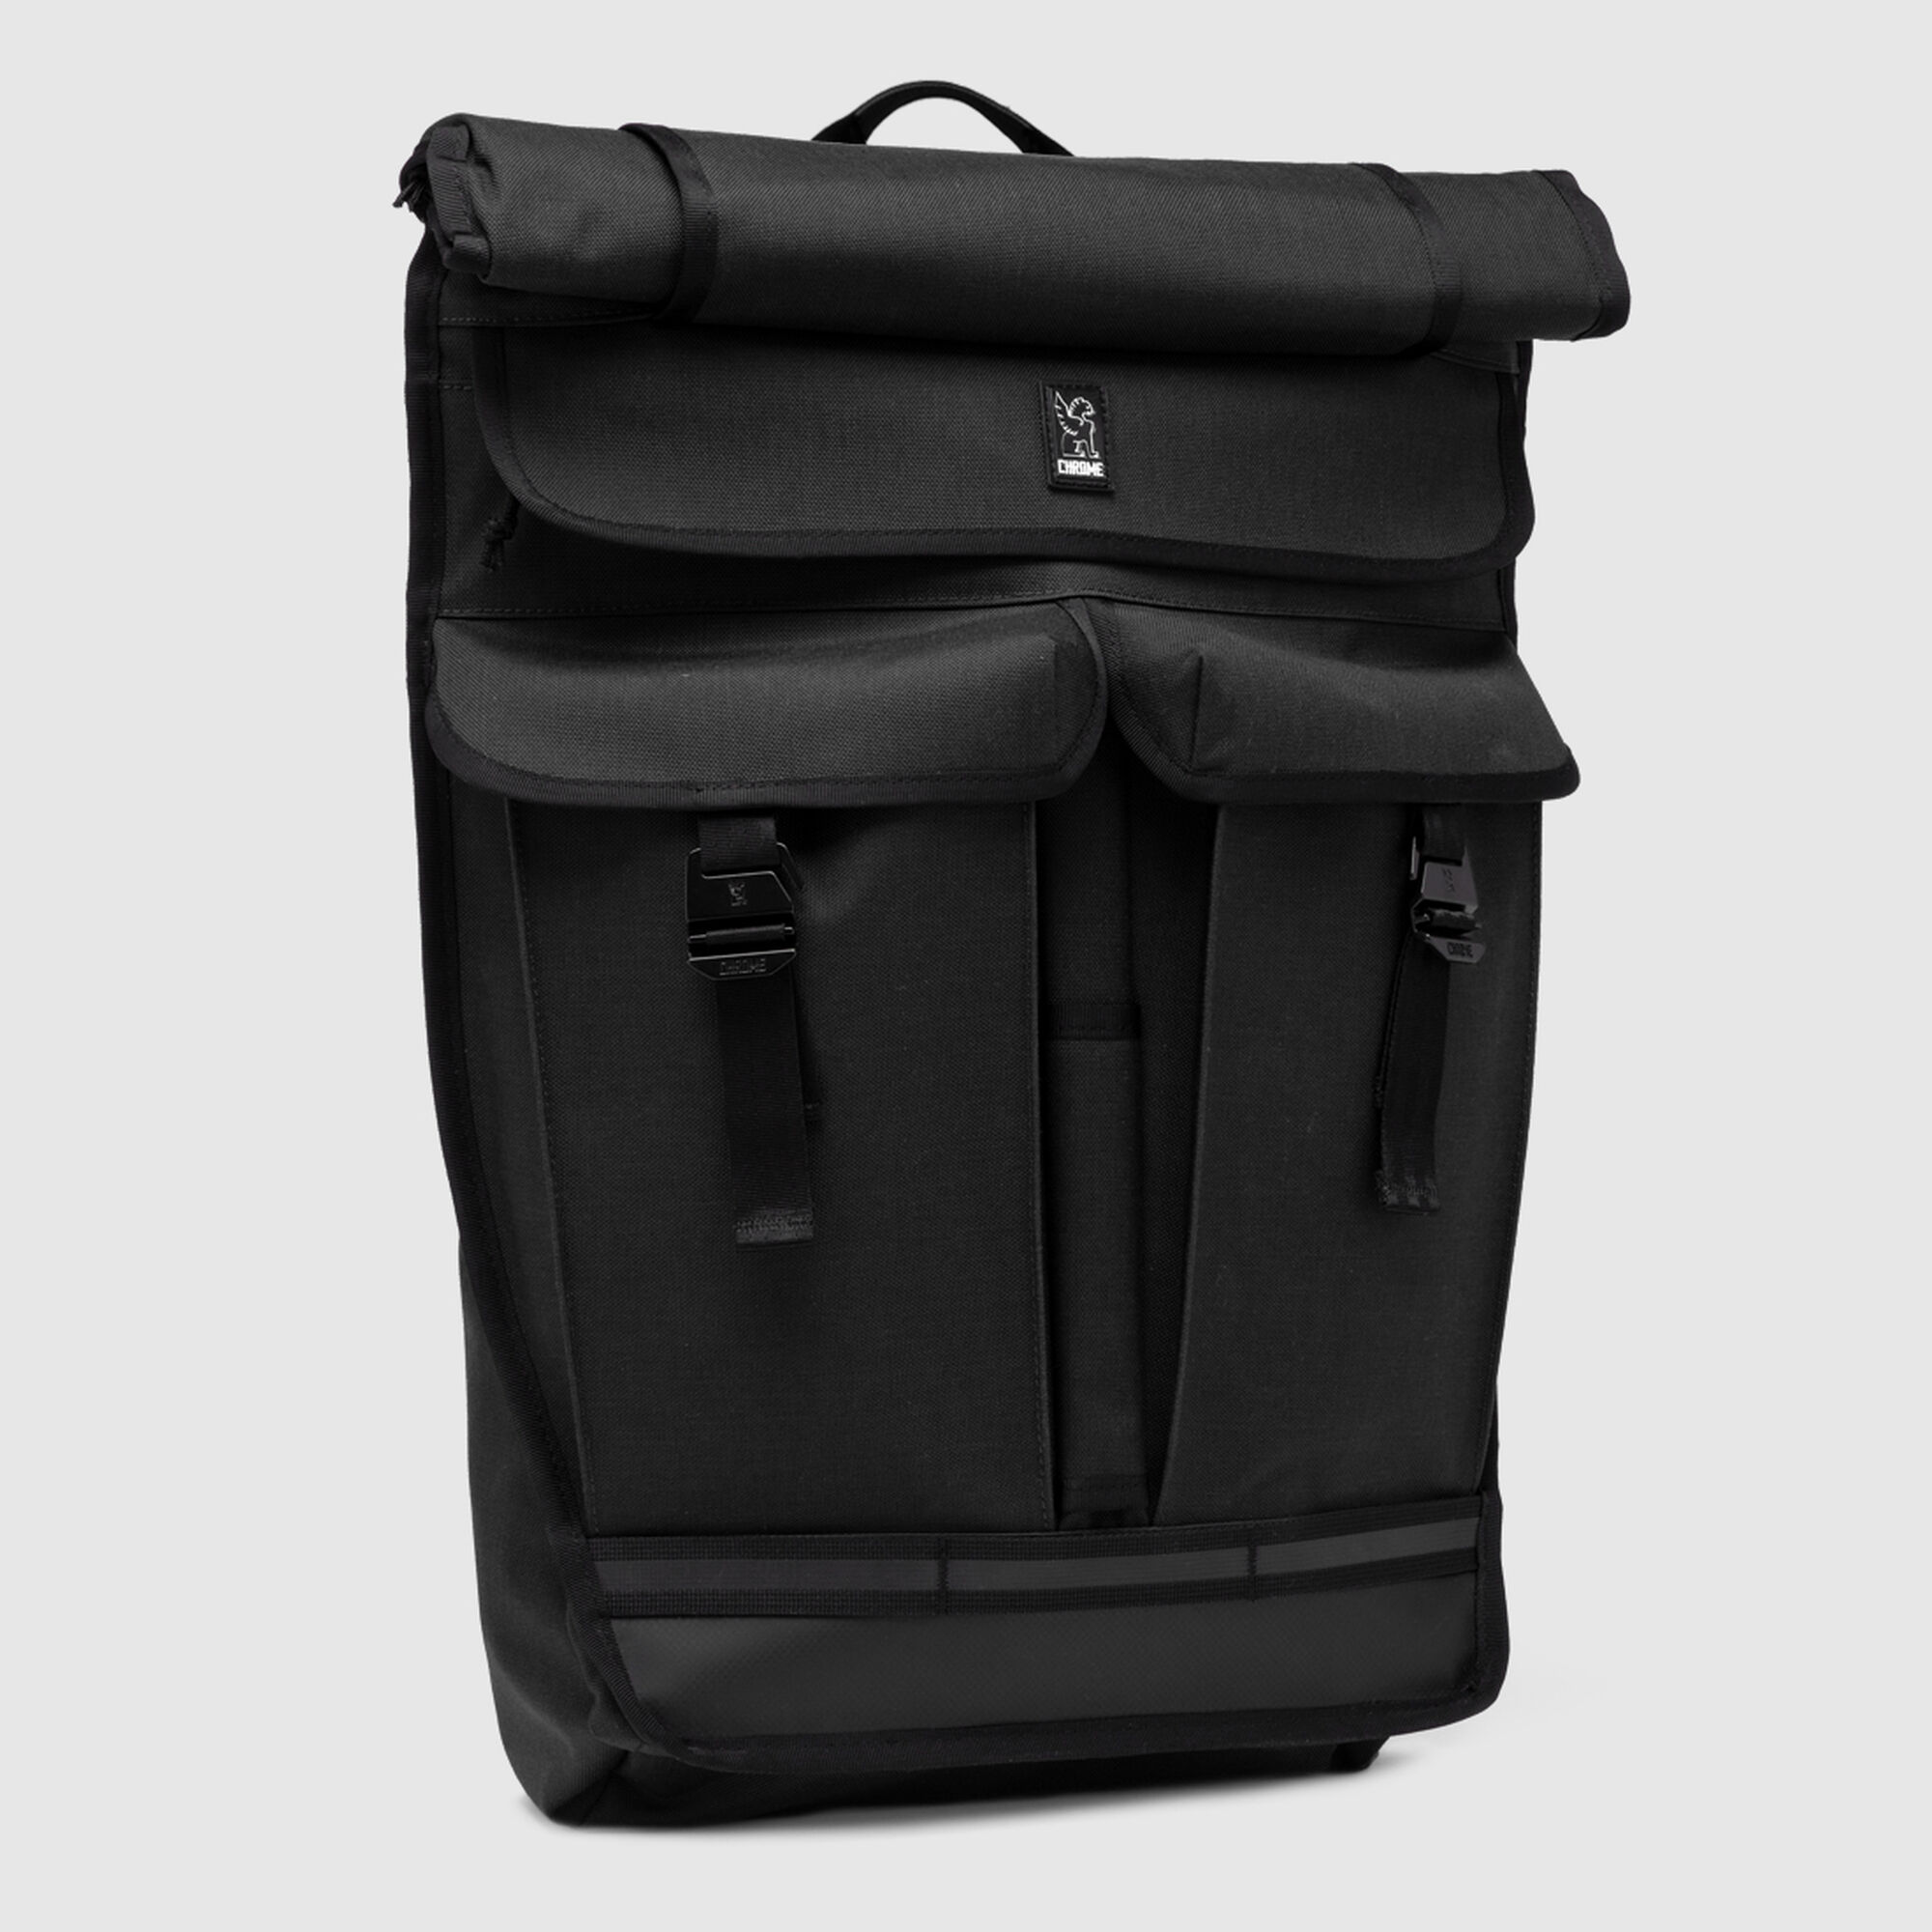 Orlov 2 0 Backpack In All Black Small View